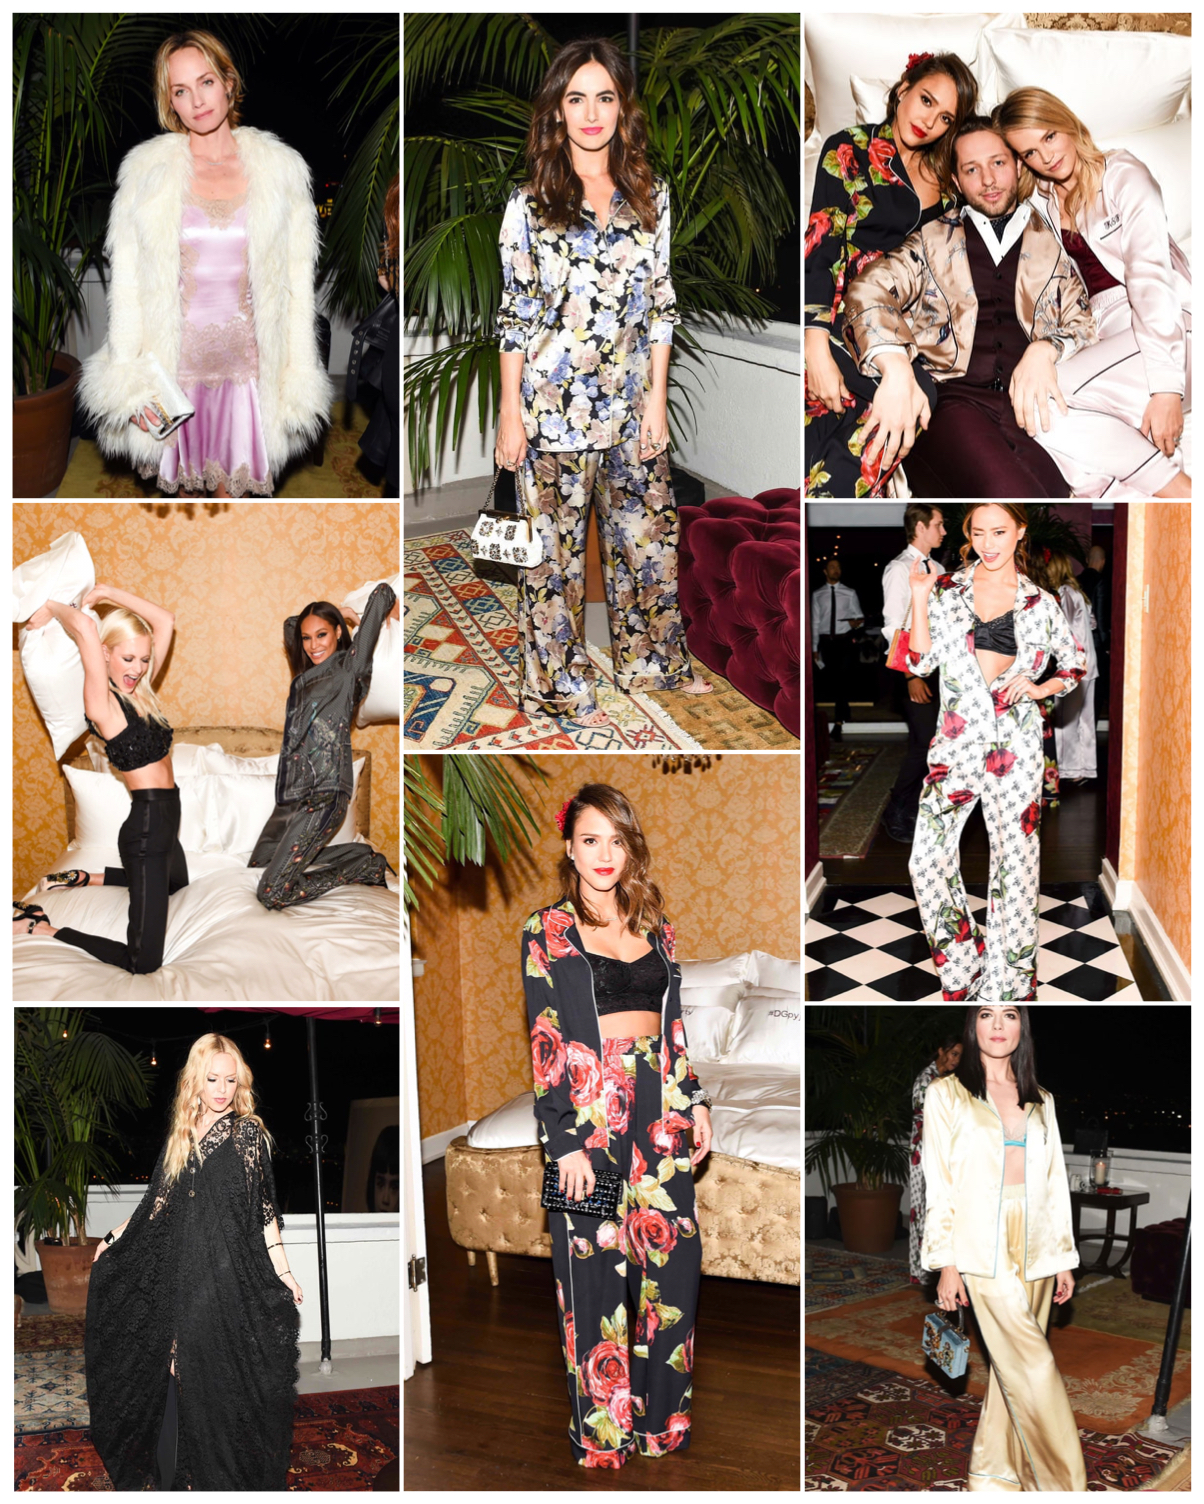 Party Chic The Insane Dolce Gabbana Pyjama Party Chic Every Week